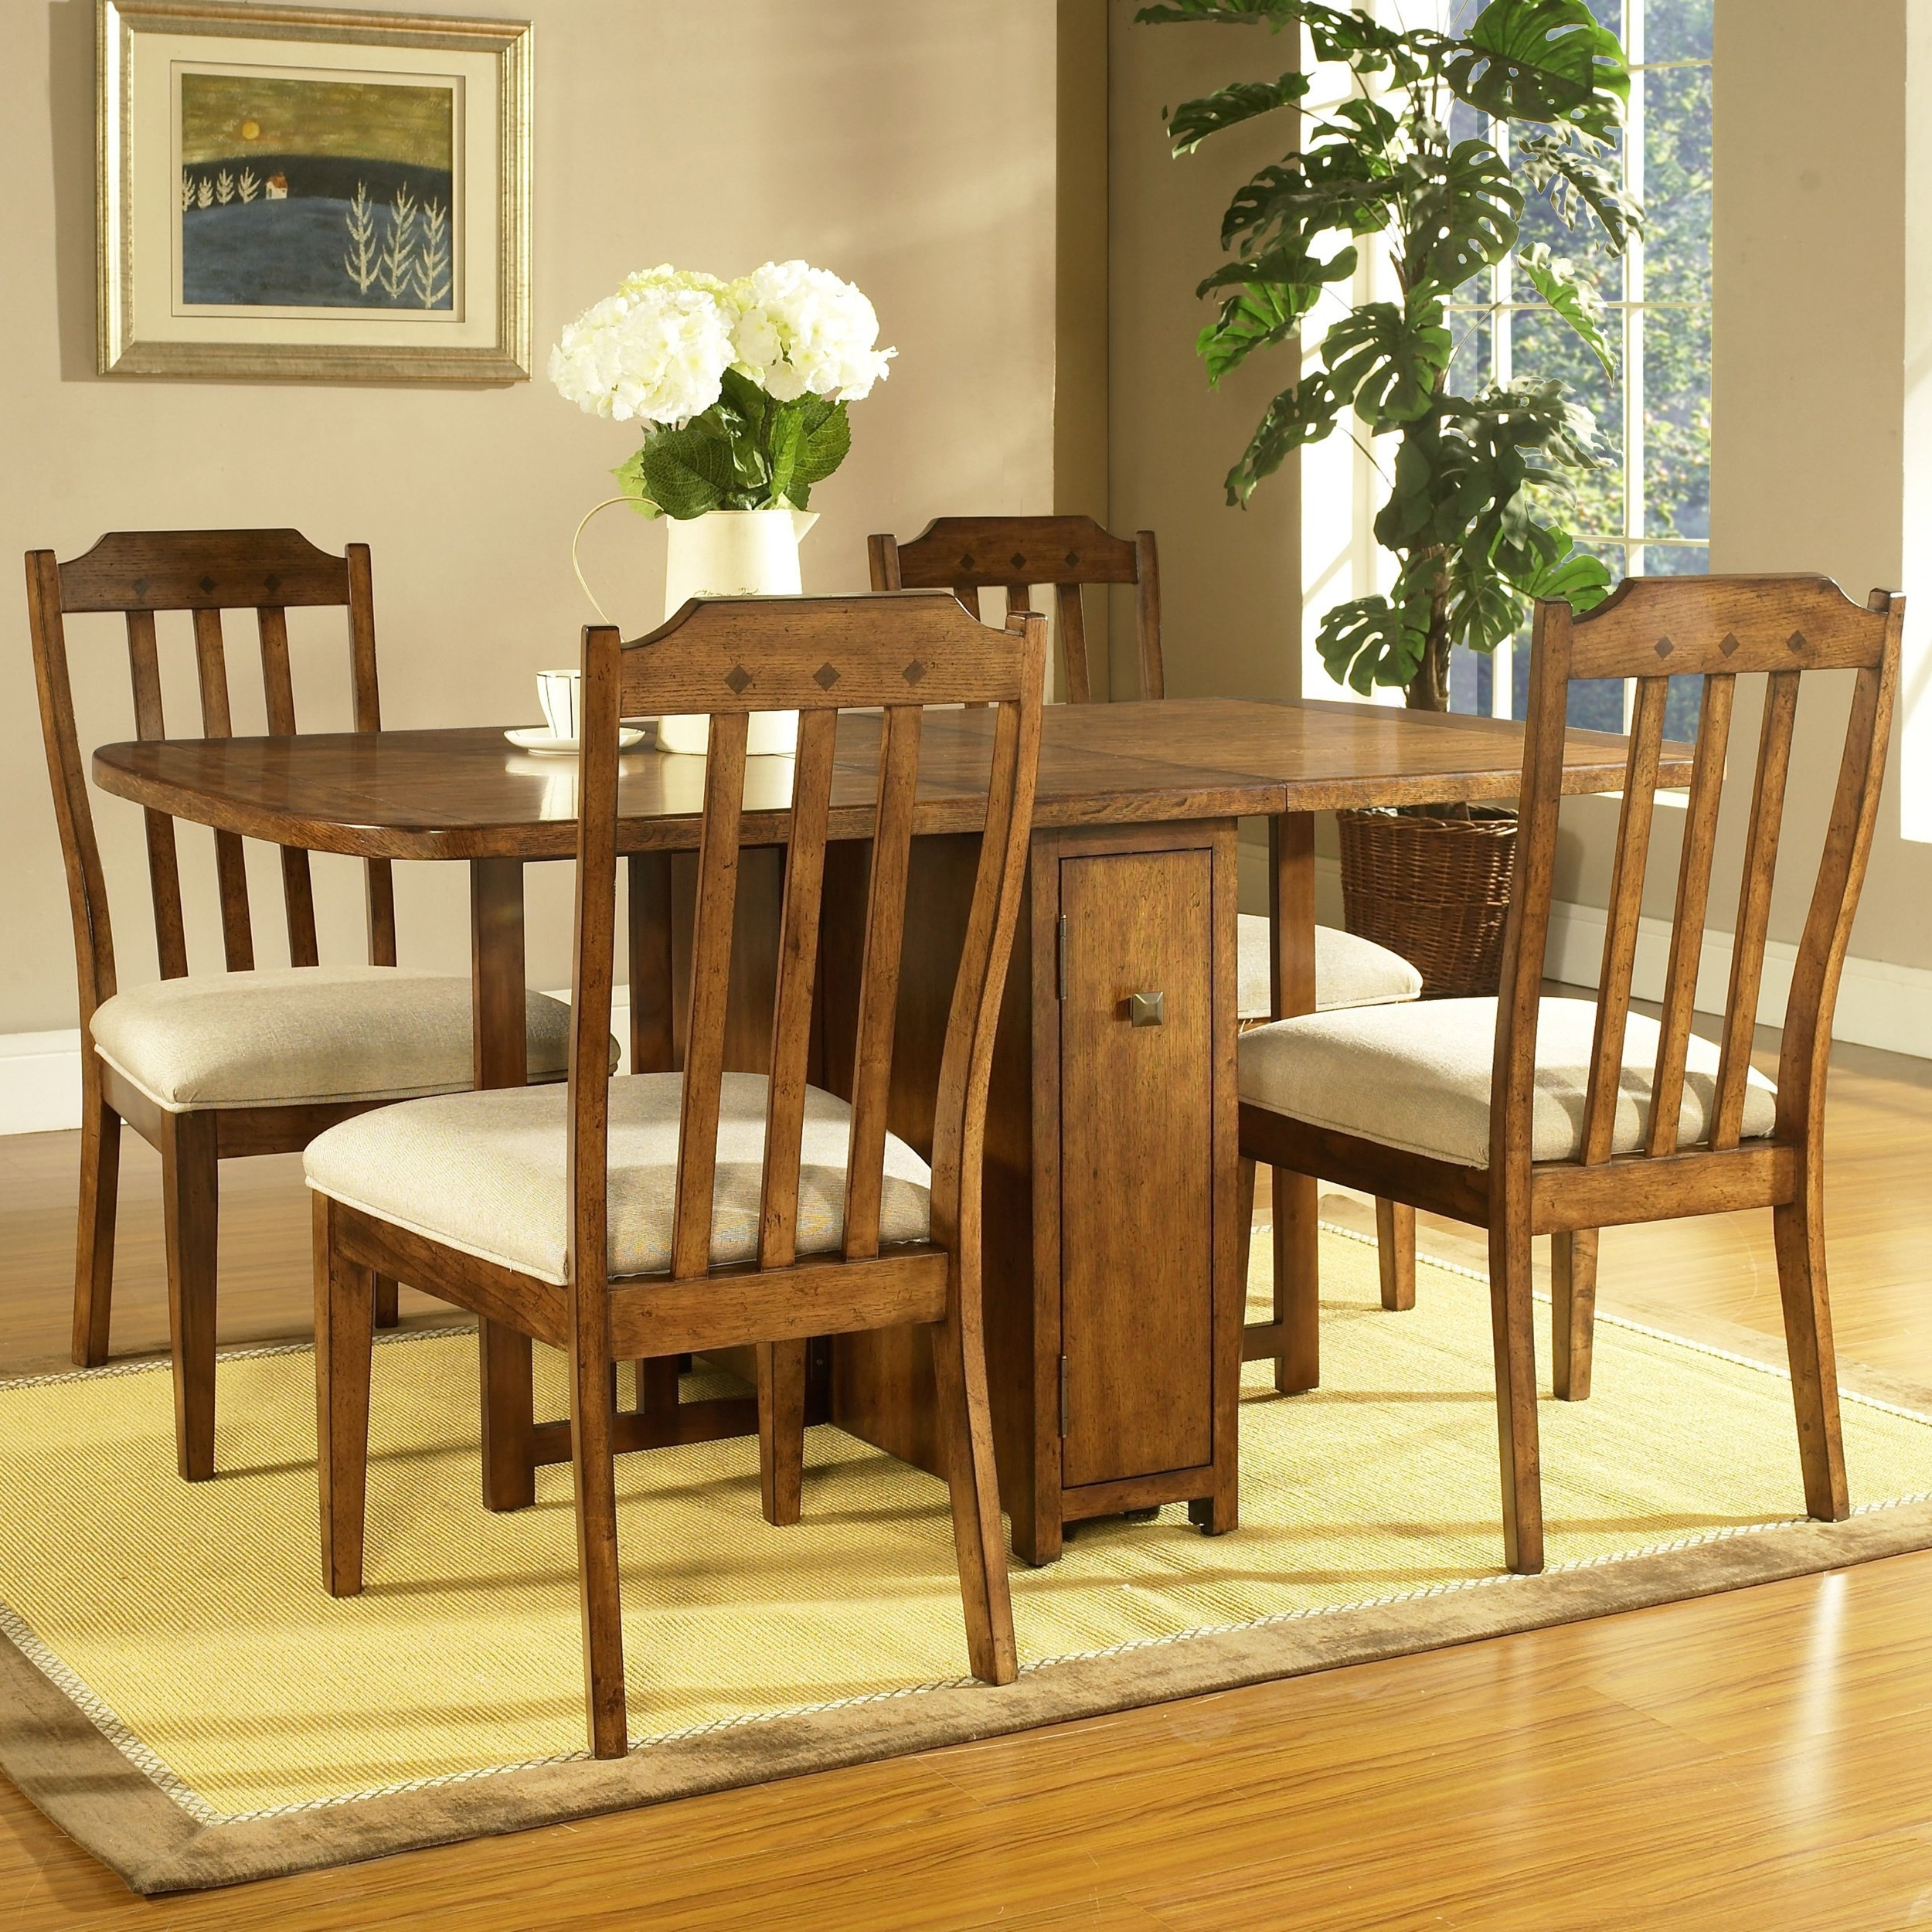 Craftsman 7 Piece Rectangular Extension Dining Sets With Arm & Uph Side Chairs Pertaining To Most Up To Date Shop Somerton Dwelling Craftsman 5 Piece Gate Leg Dining Set – Free (Gallery 23 of 25)